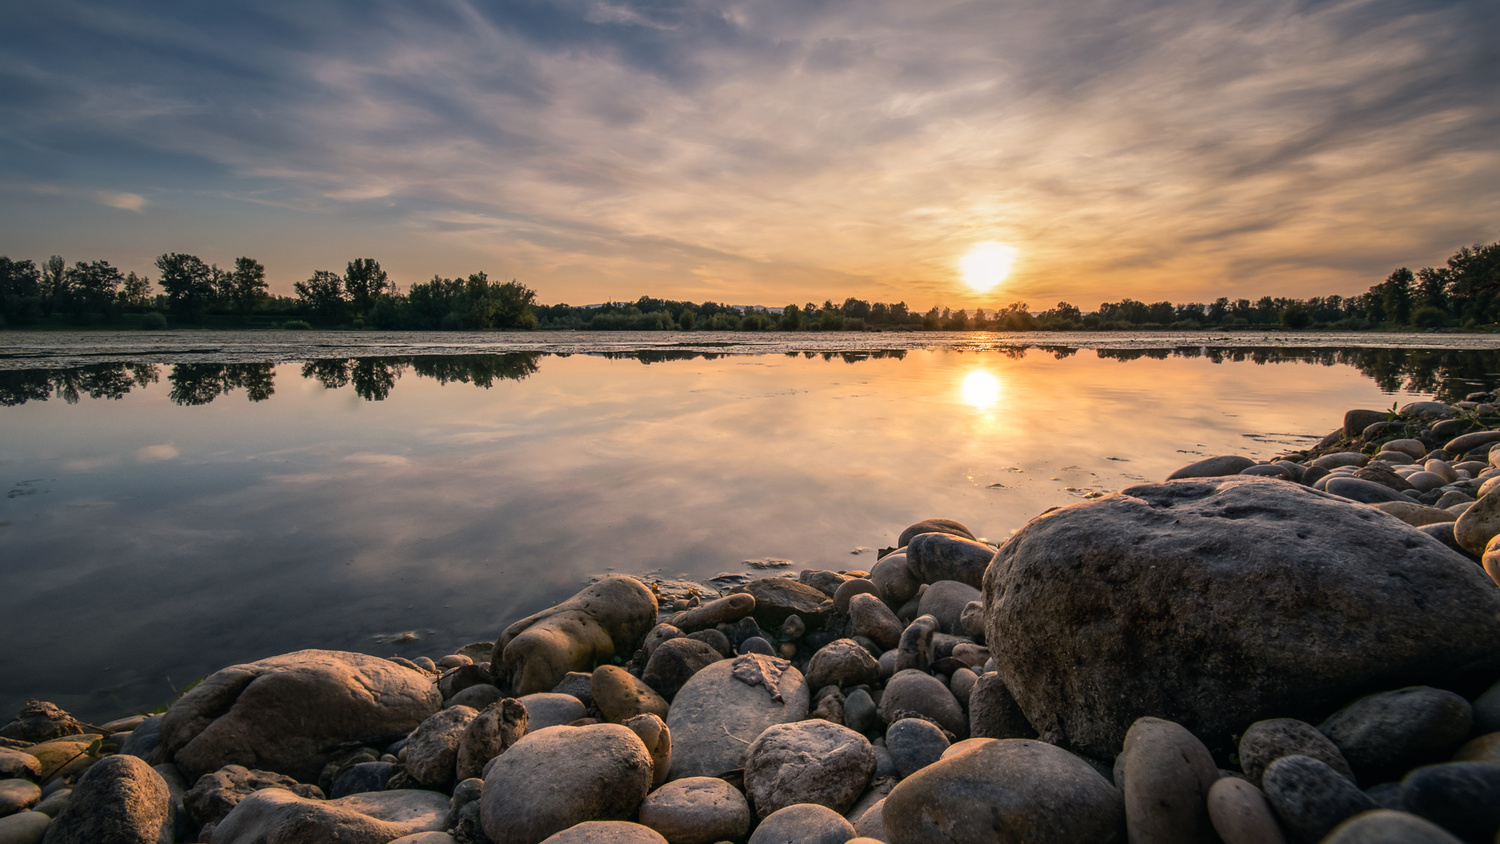 Sunset at lake Oresje by Tihomir Dubic